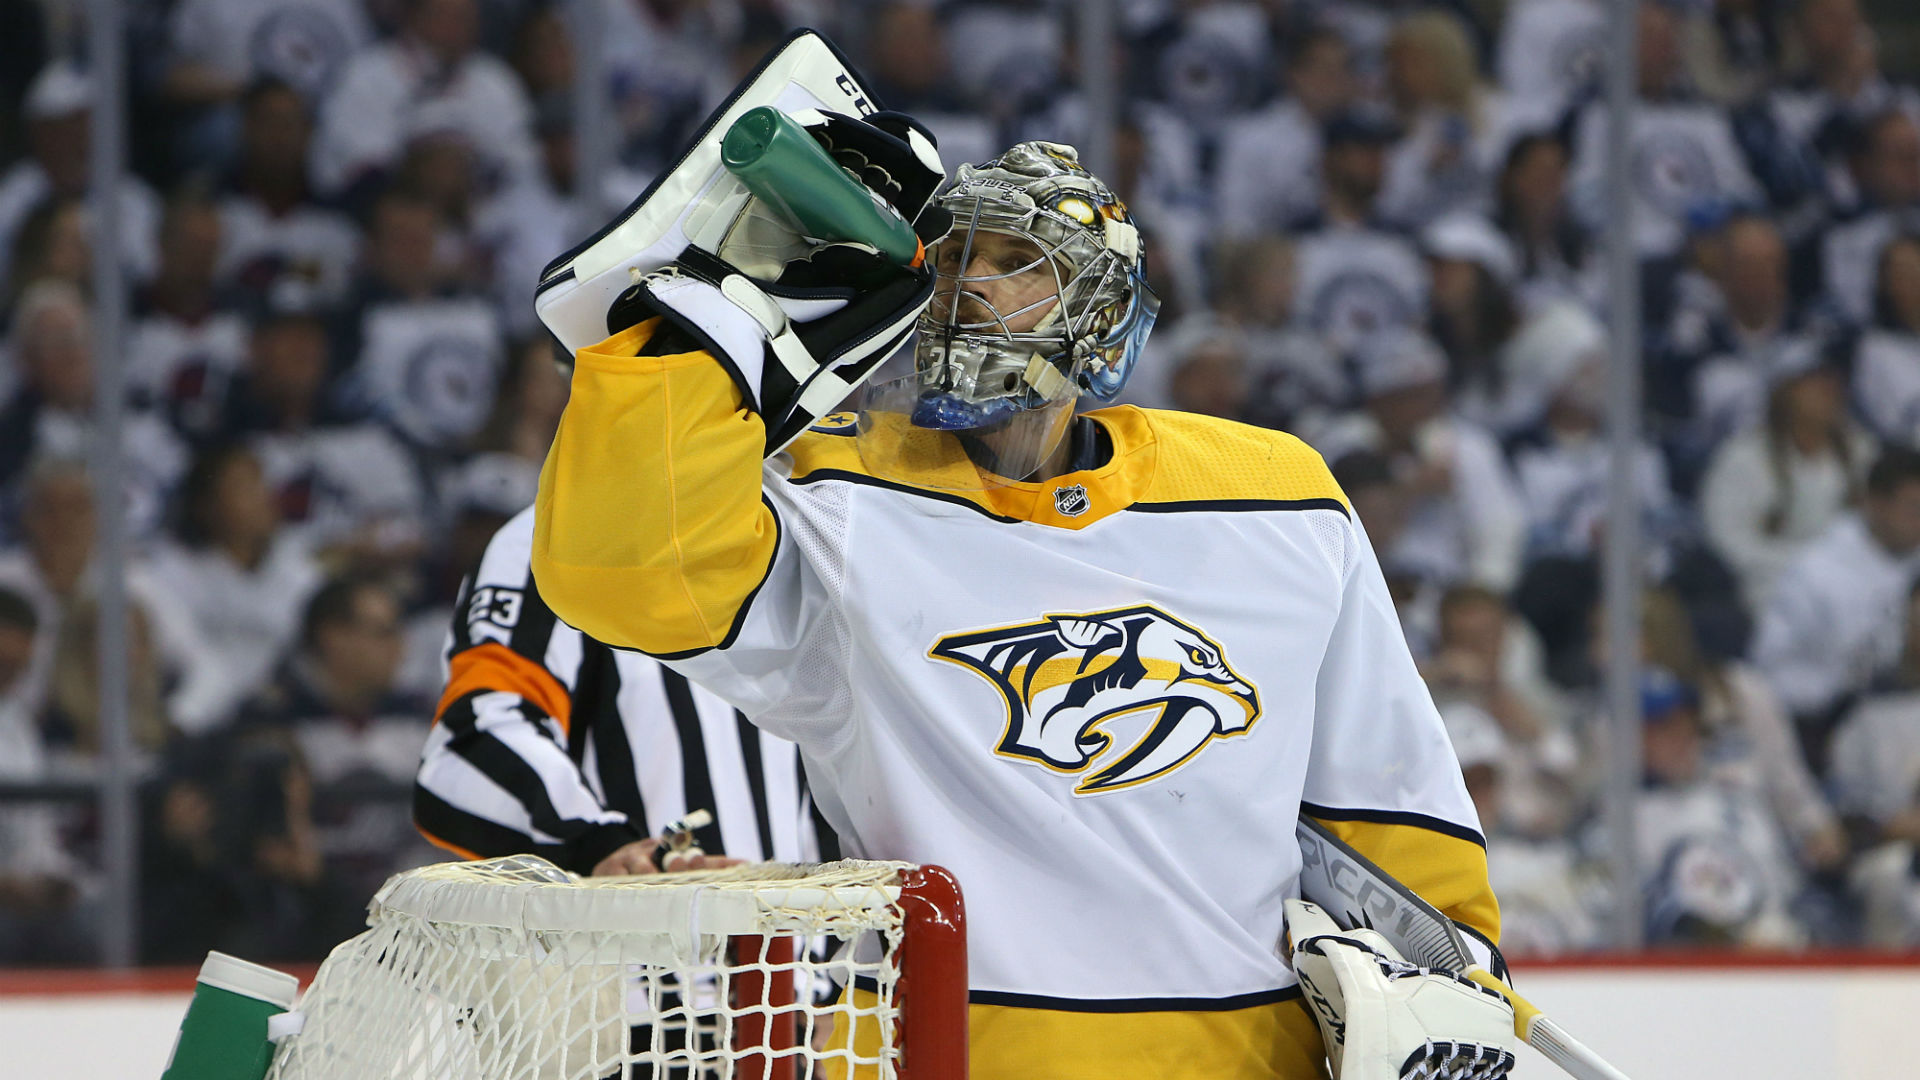 Jets late push not enough, Predators tie up series